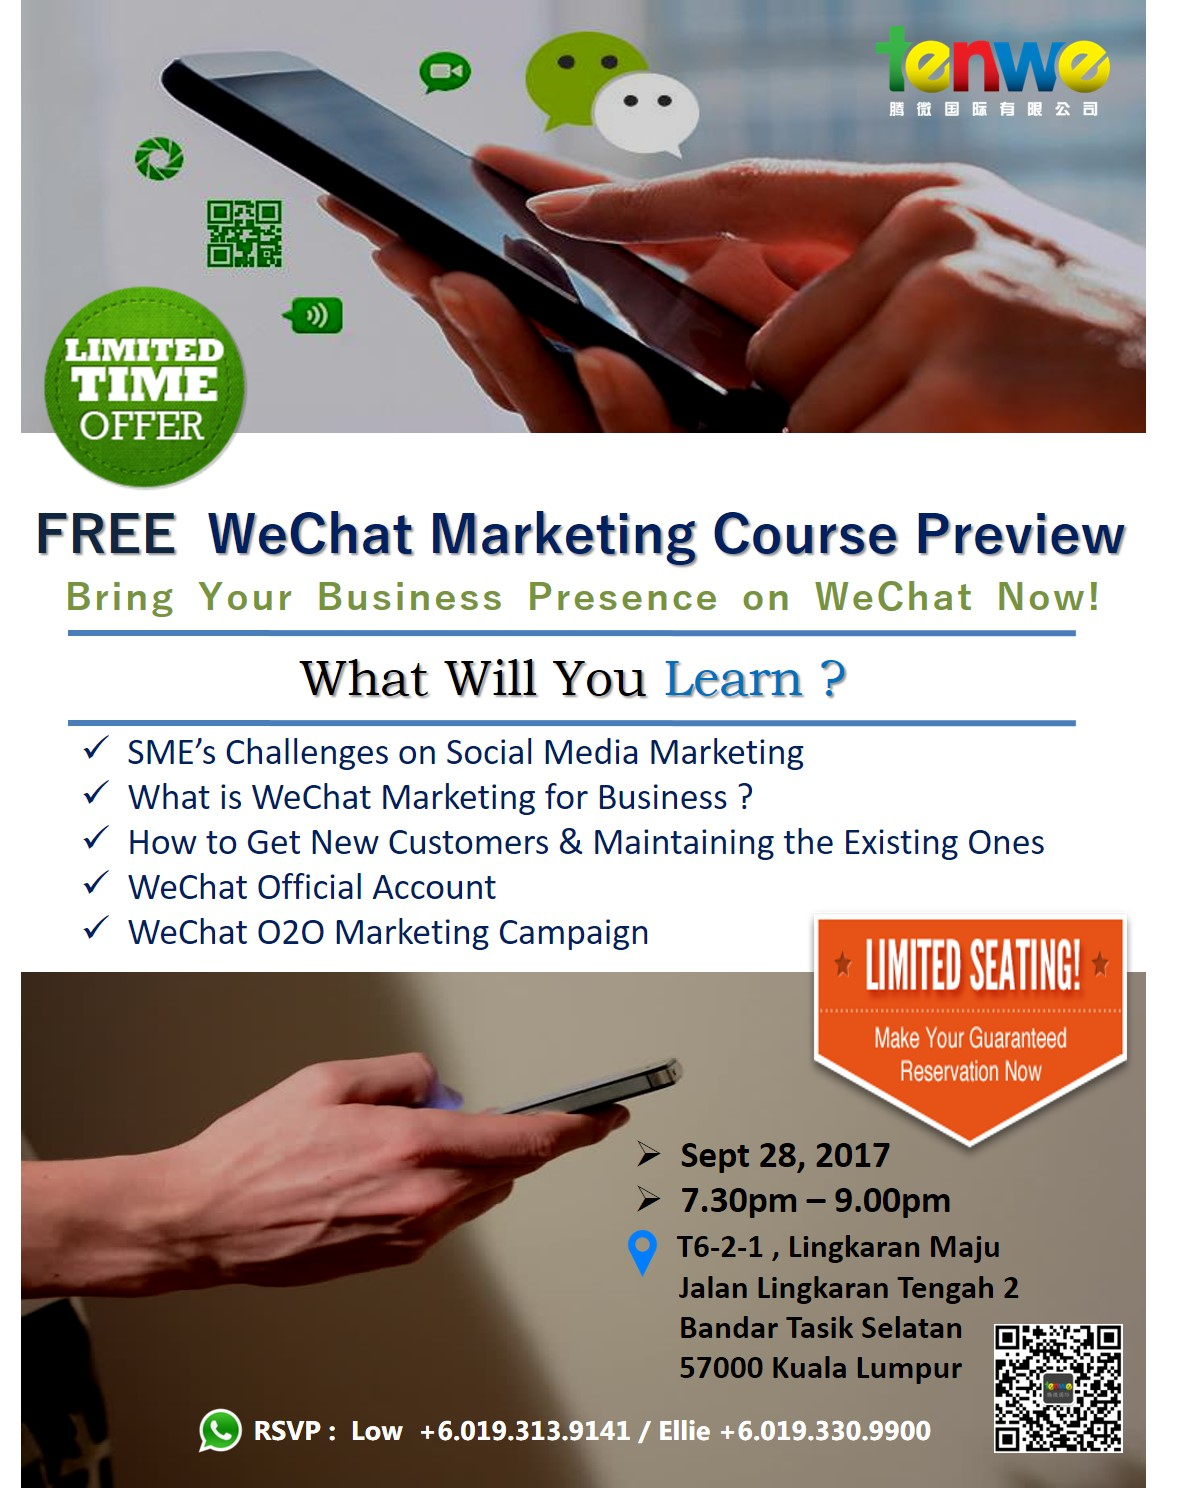 Bring Your Business Presence on WeChat Now!